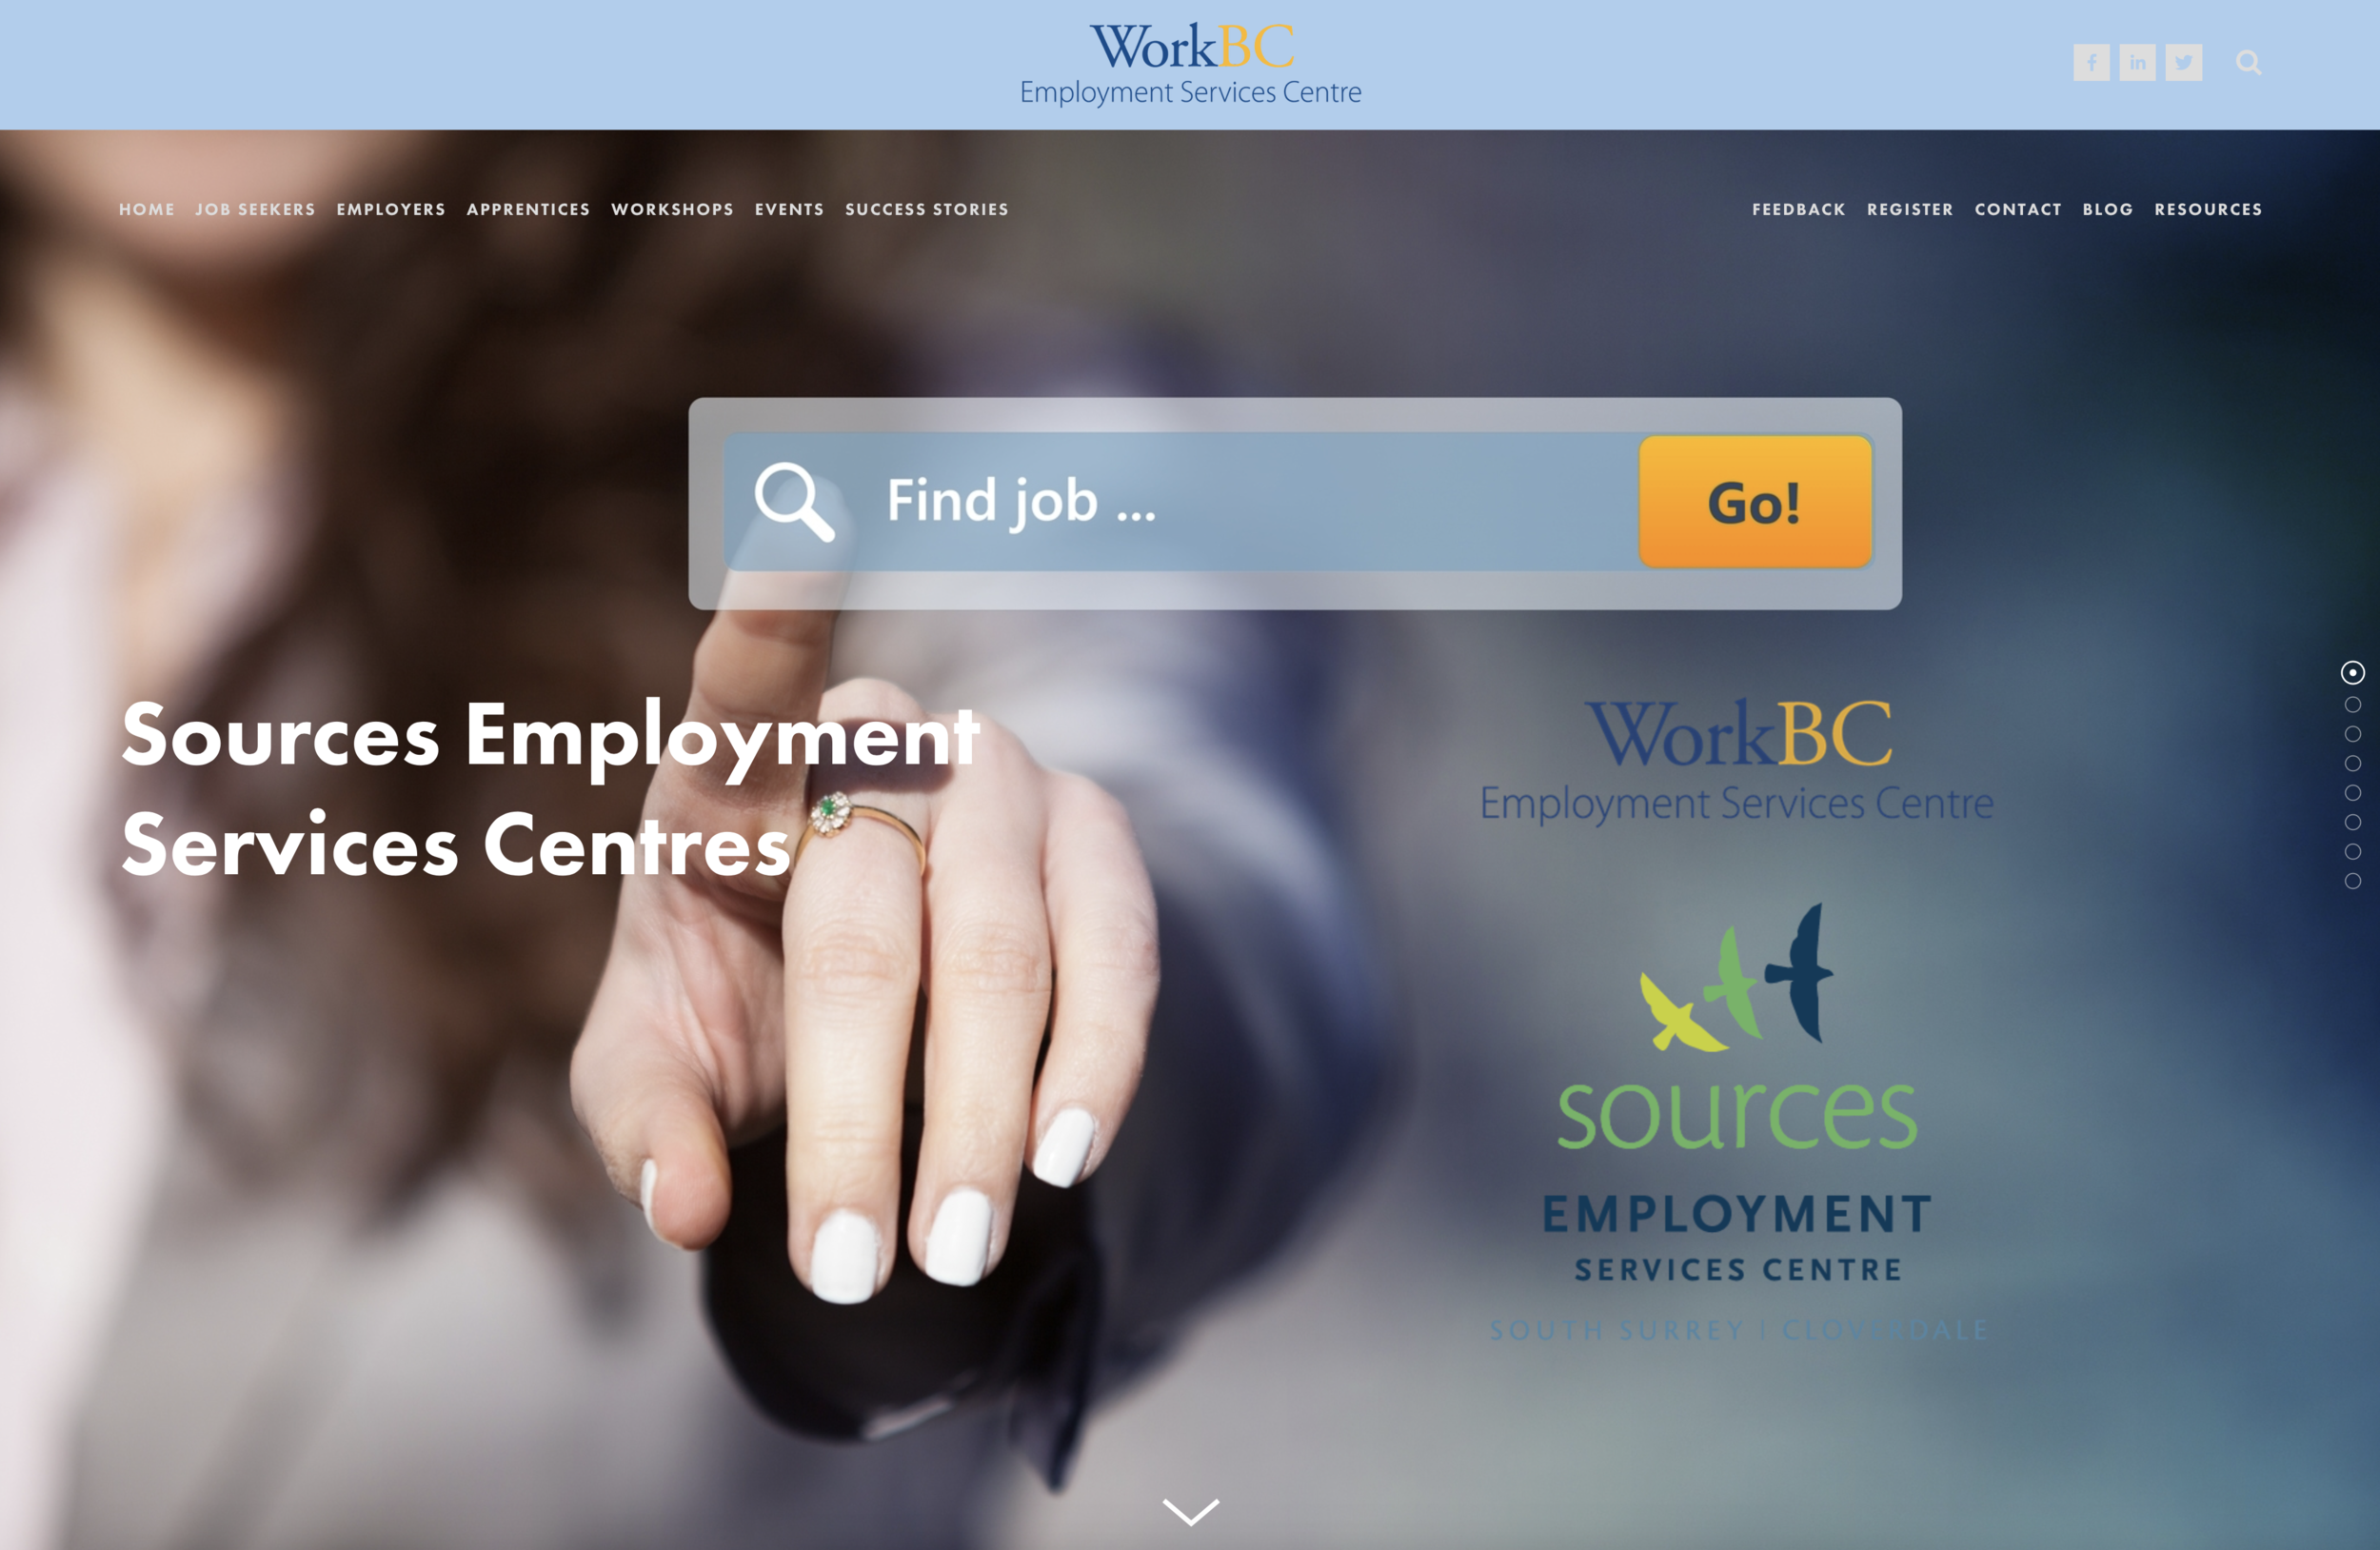 Sources WorkBC Employment Services Centre - Donna Halme Designs created a Squarespace website design to include both the WorkBC Employment Services Centres of Cloverdale and South Surrey|White Rock. The website design is intricate and has many pages with links to important information. The website content, pages, and links are presented in an easy and informative way so visitors searching online whether it be the community, job seekers, or employers alike can navigation efficiently throughout the website to find the information they are seeking. This was their Previous Website Design. As of April 30, 2019, the organization, Sources Community Resources Society, is no longer providing WorkBC Employment Services under Sources WorkBC Employment Services Centre due to the fact they were out bid. You can take a look at a video created.